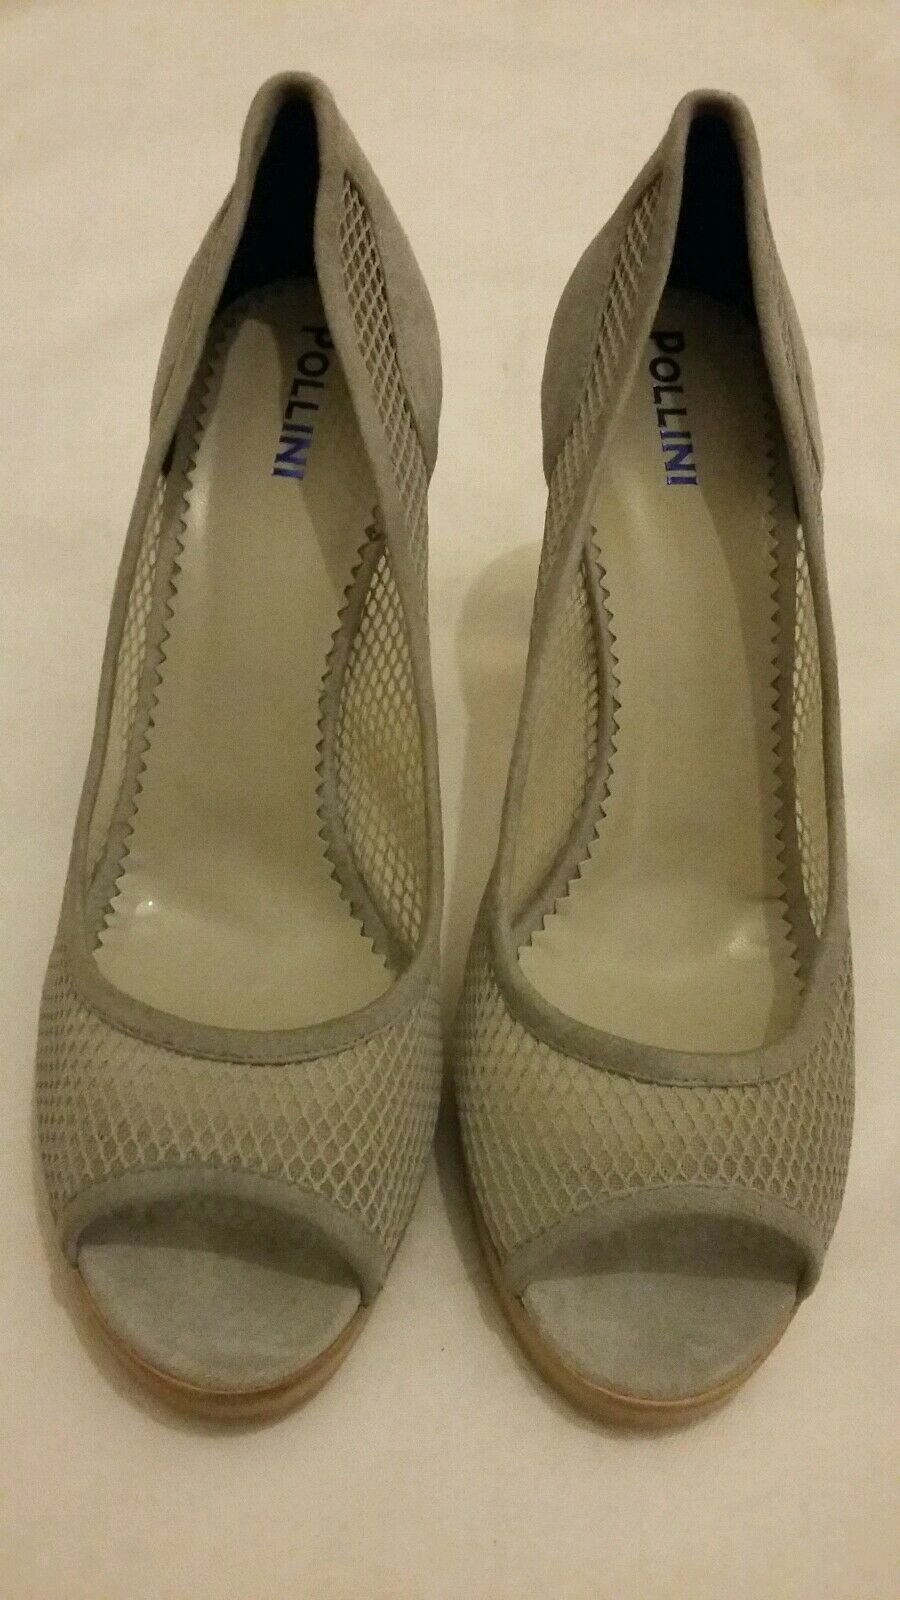 POLLINI Suede Lace - Mesh High Heel Platform Peep Toe shoes Grey Size uk 7 eu 40